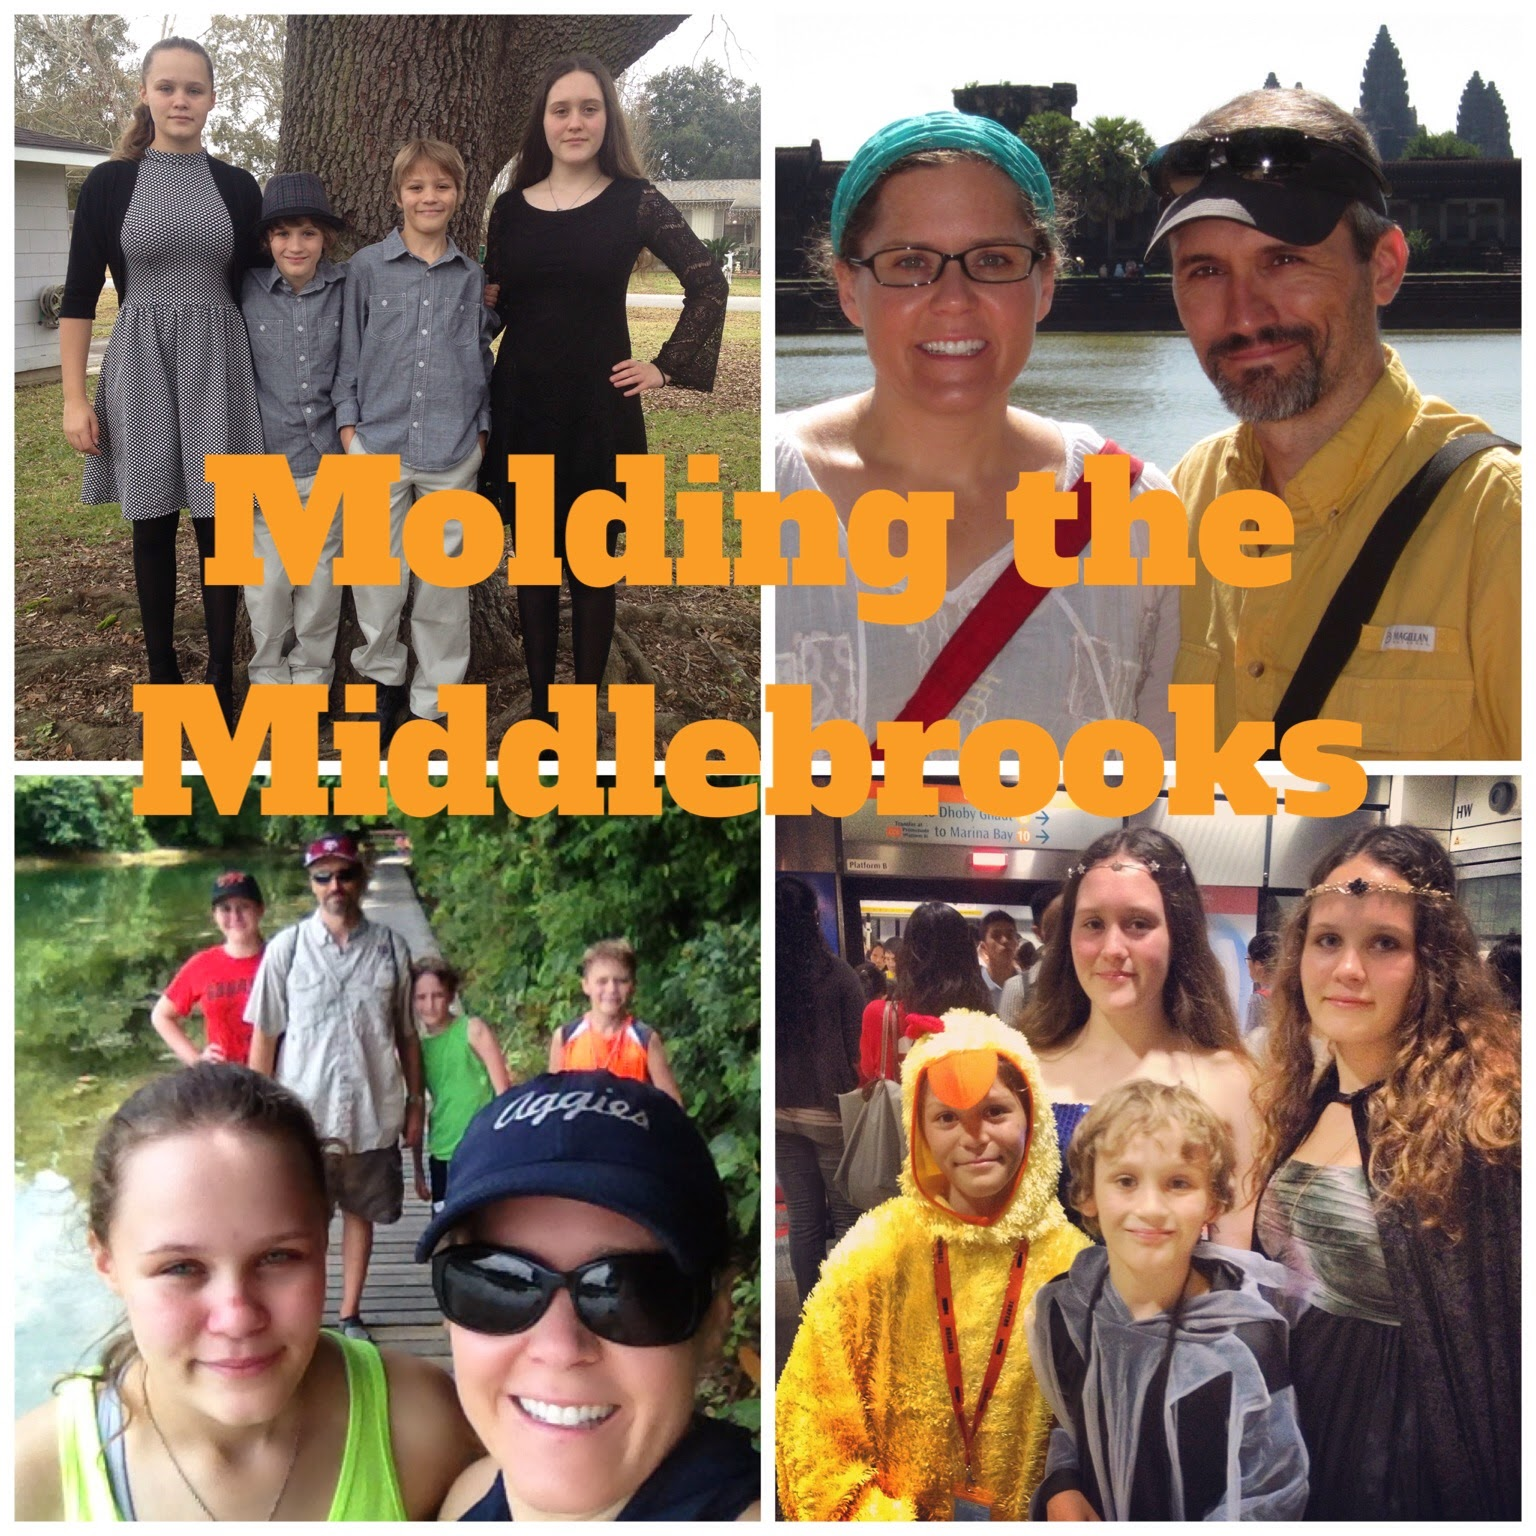 Molding the Middlebrooks